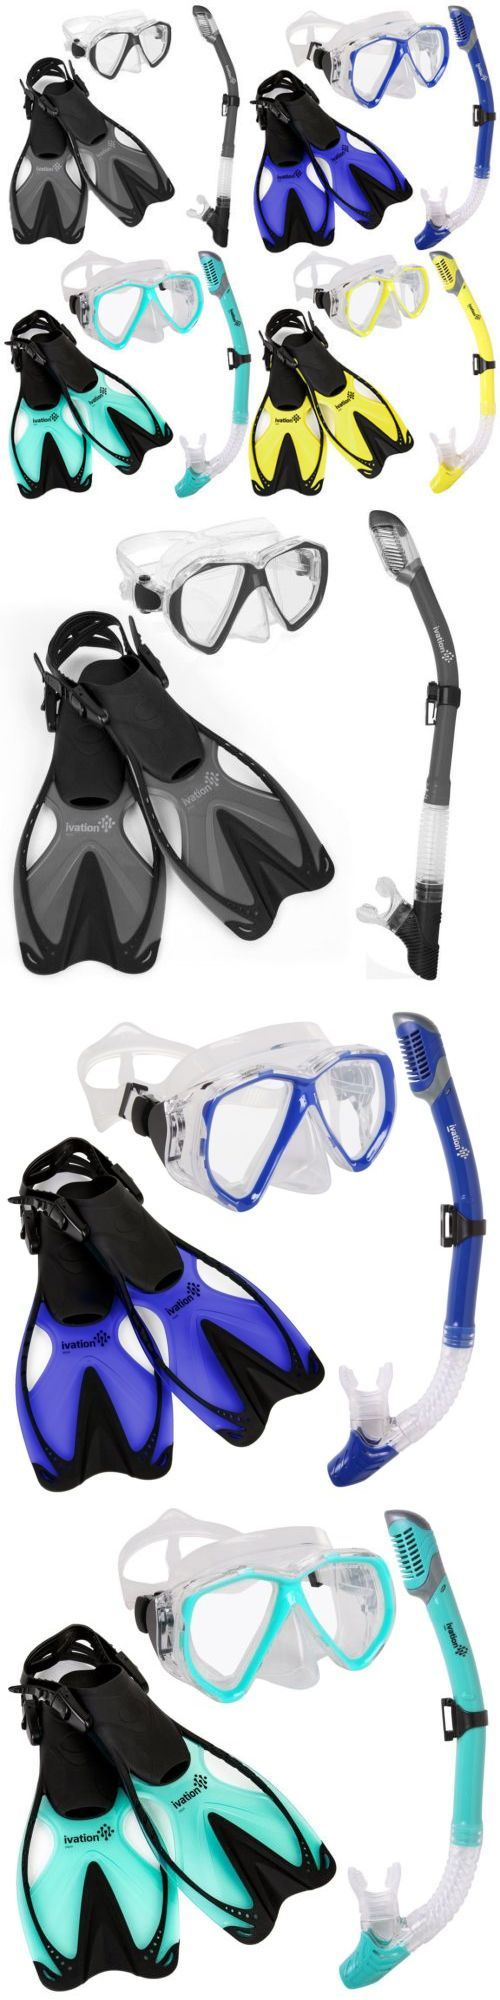 Snorkels and Sets 71162: Snorkel Gear - Snorkeling Mask, Dry Snorkel, And Fins Set - Diving, Swimming -> BUY IT NOW ONLY: $52.99 on eBay! #scubadivingtrip